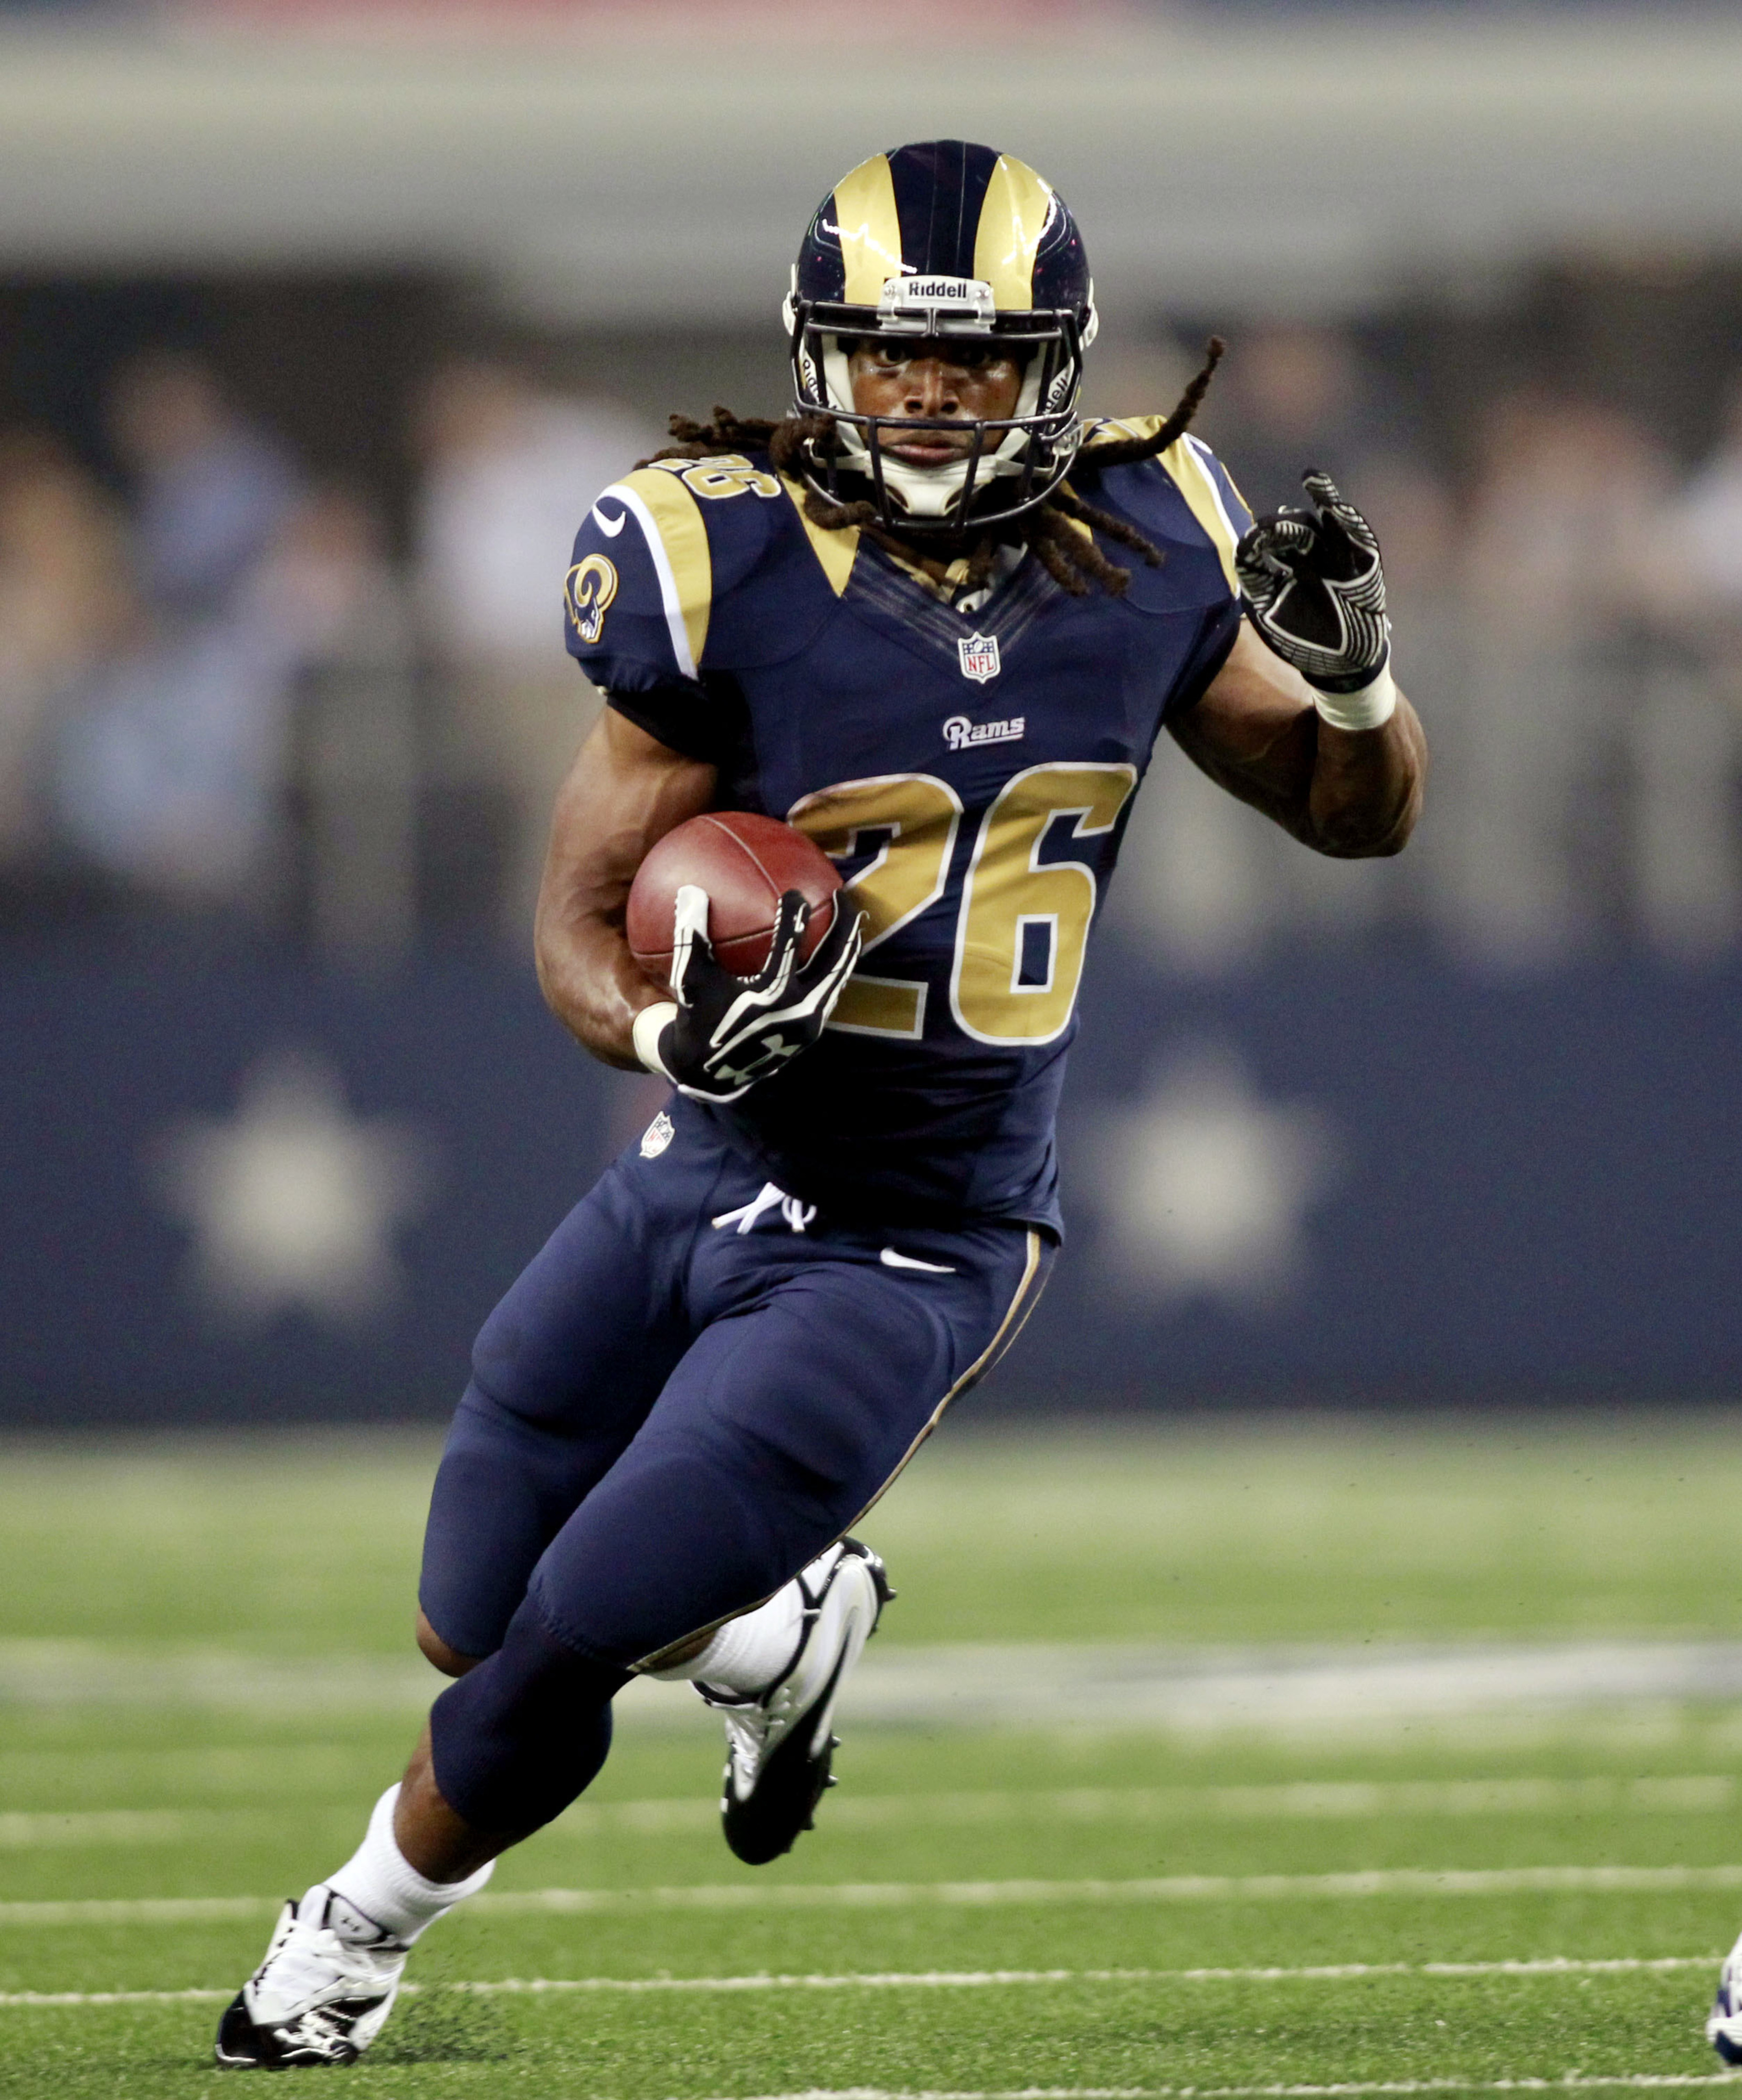 Aug 25, 2012; Arlington, TX, USA; St Louis Rams running back Daryl Richardson (26) carries the ball during the second quarter against the Dallas Cowboys at Cowboys Stadium. Mandatory Credit: Tim Heitman-US PRESSWIRE